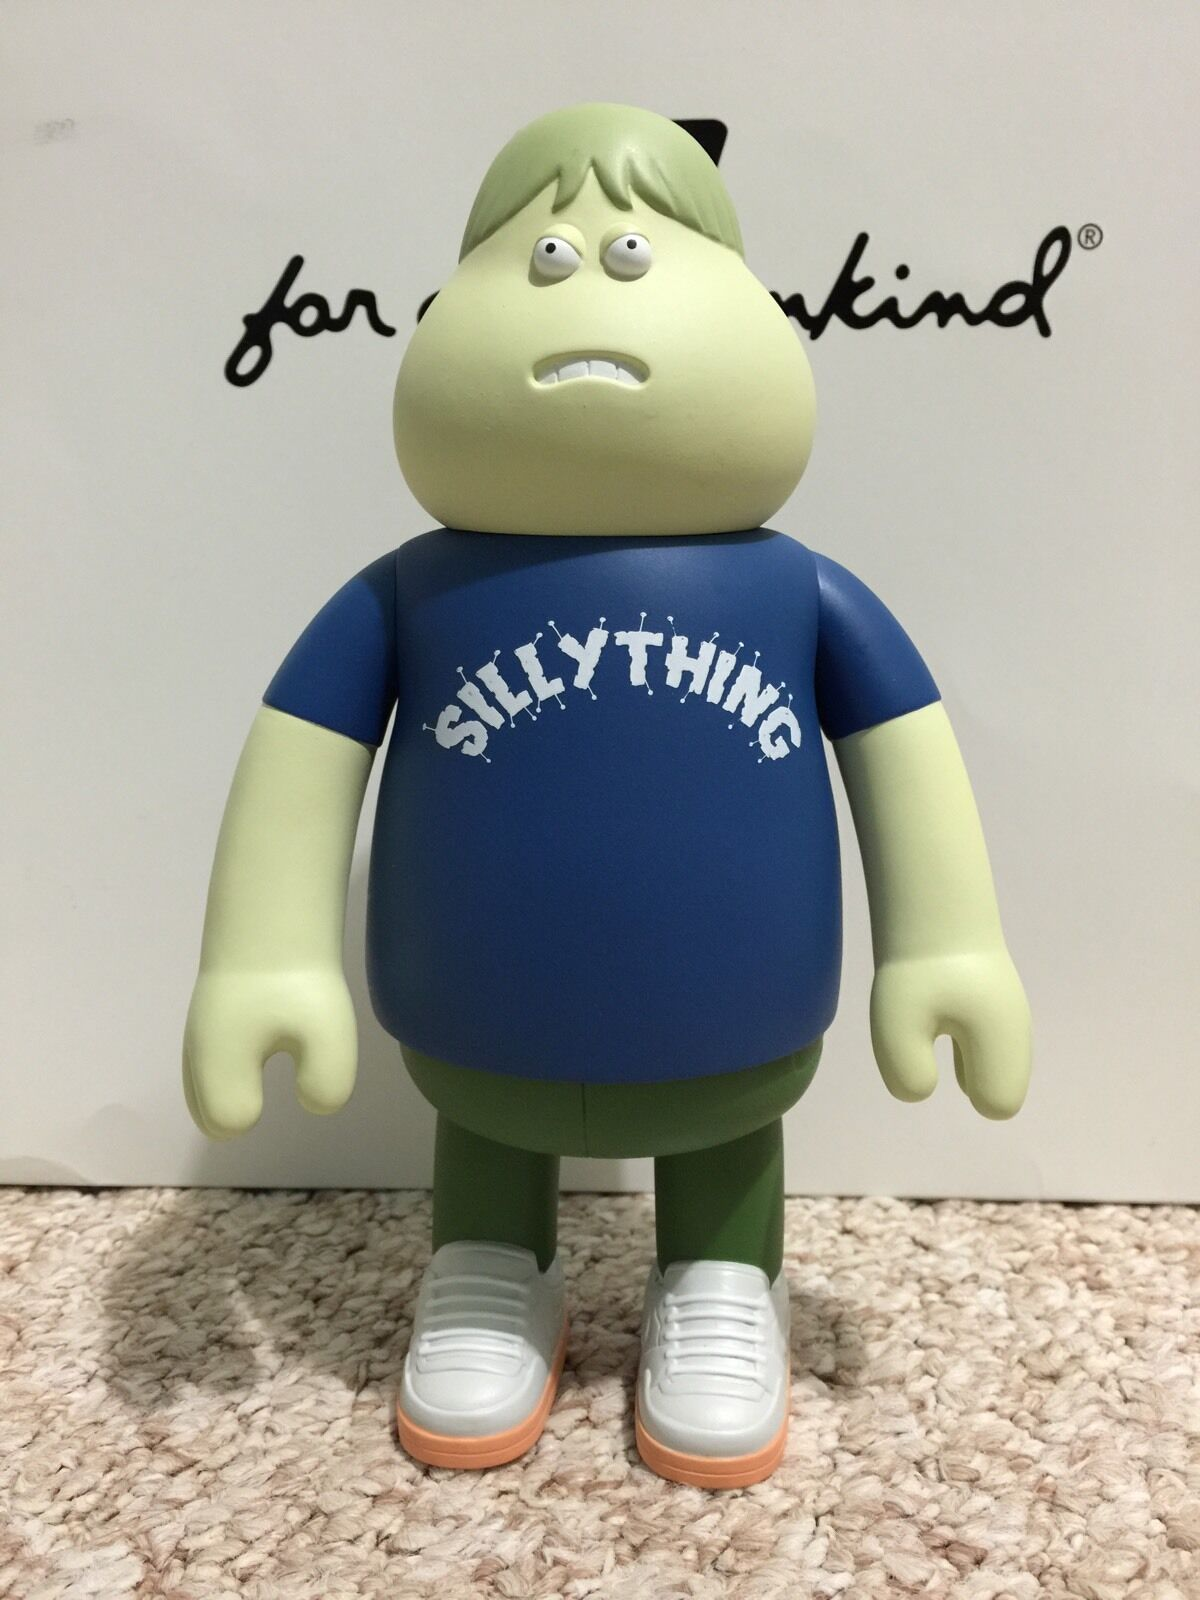 James Jarvis LEON Silly Thing blueE Vinyl Toy Figure Figure Figure Amos Toy Sealed Silas Stussy fa1